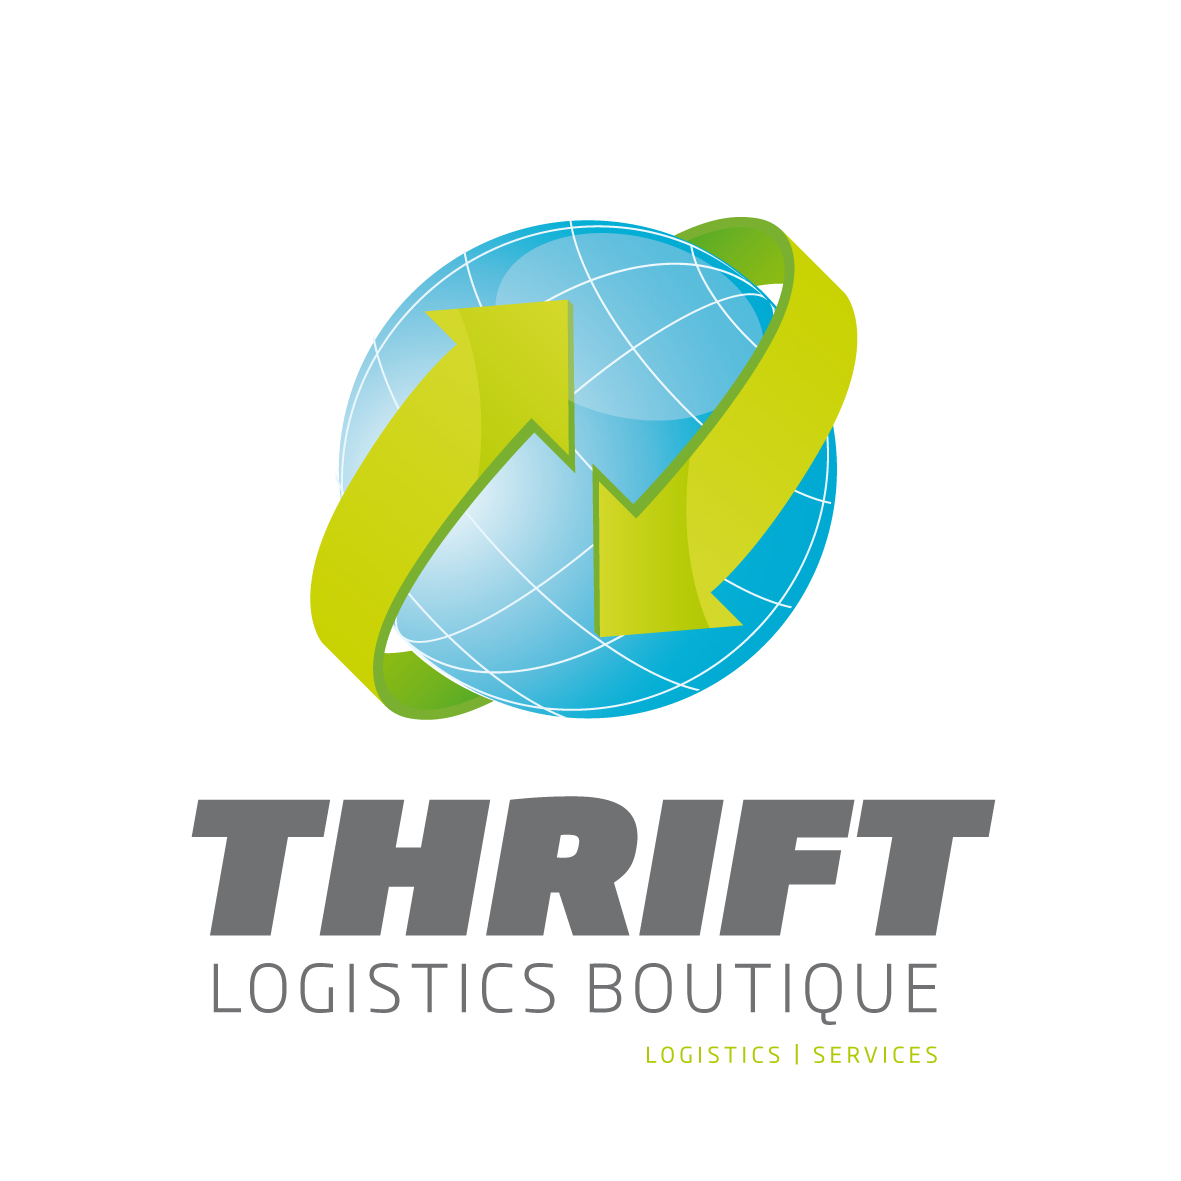 Logo Design by Alternactive for THRIFT Logisitics logo redesign contest - Design #40415